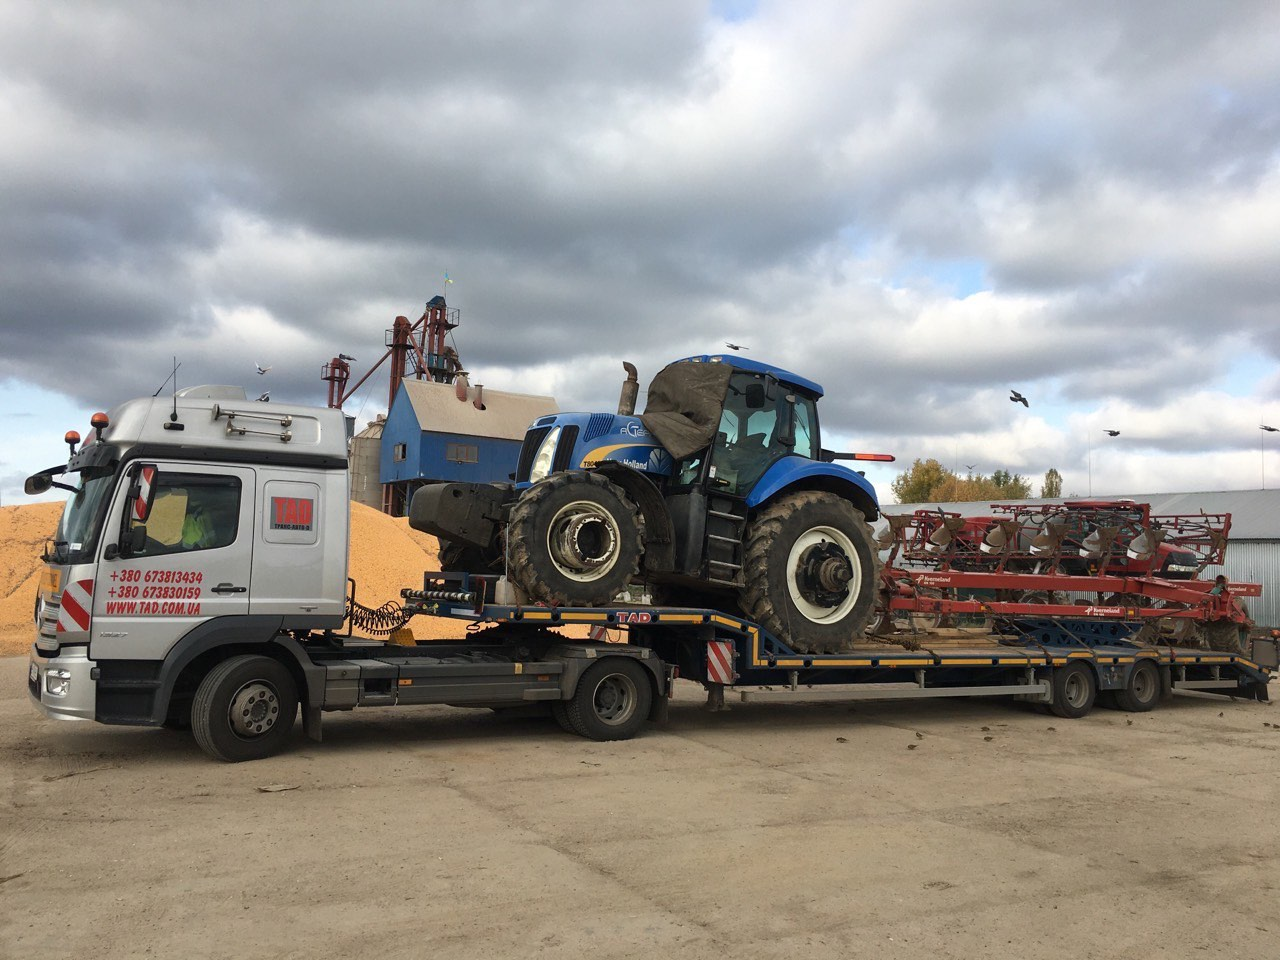 Transportation of a tractor with equipment